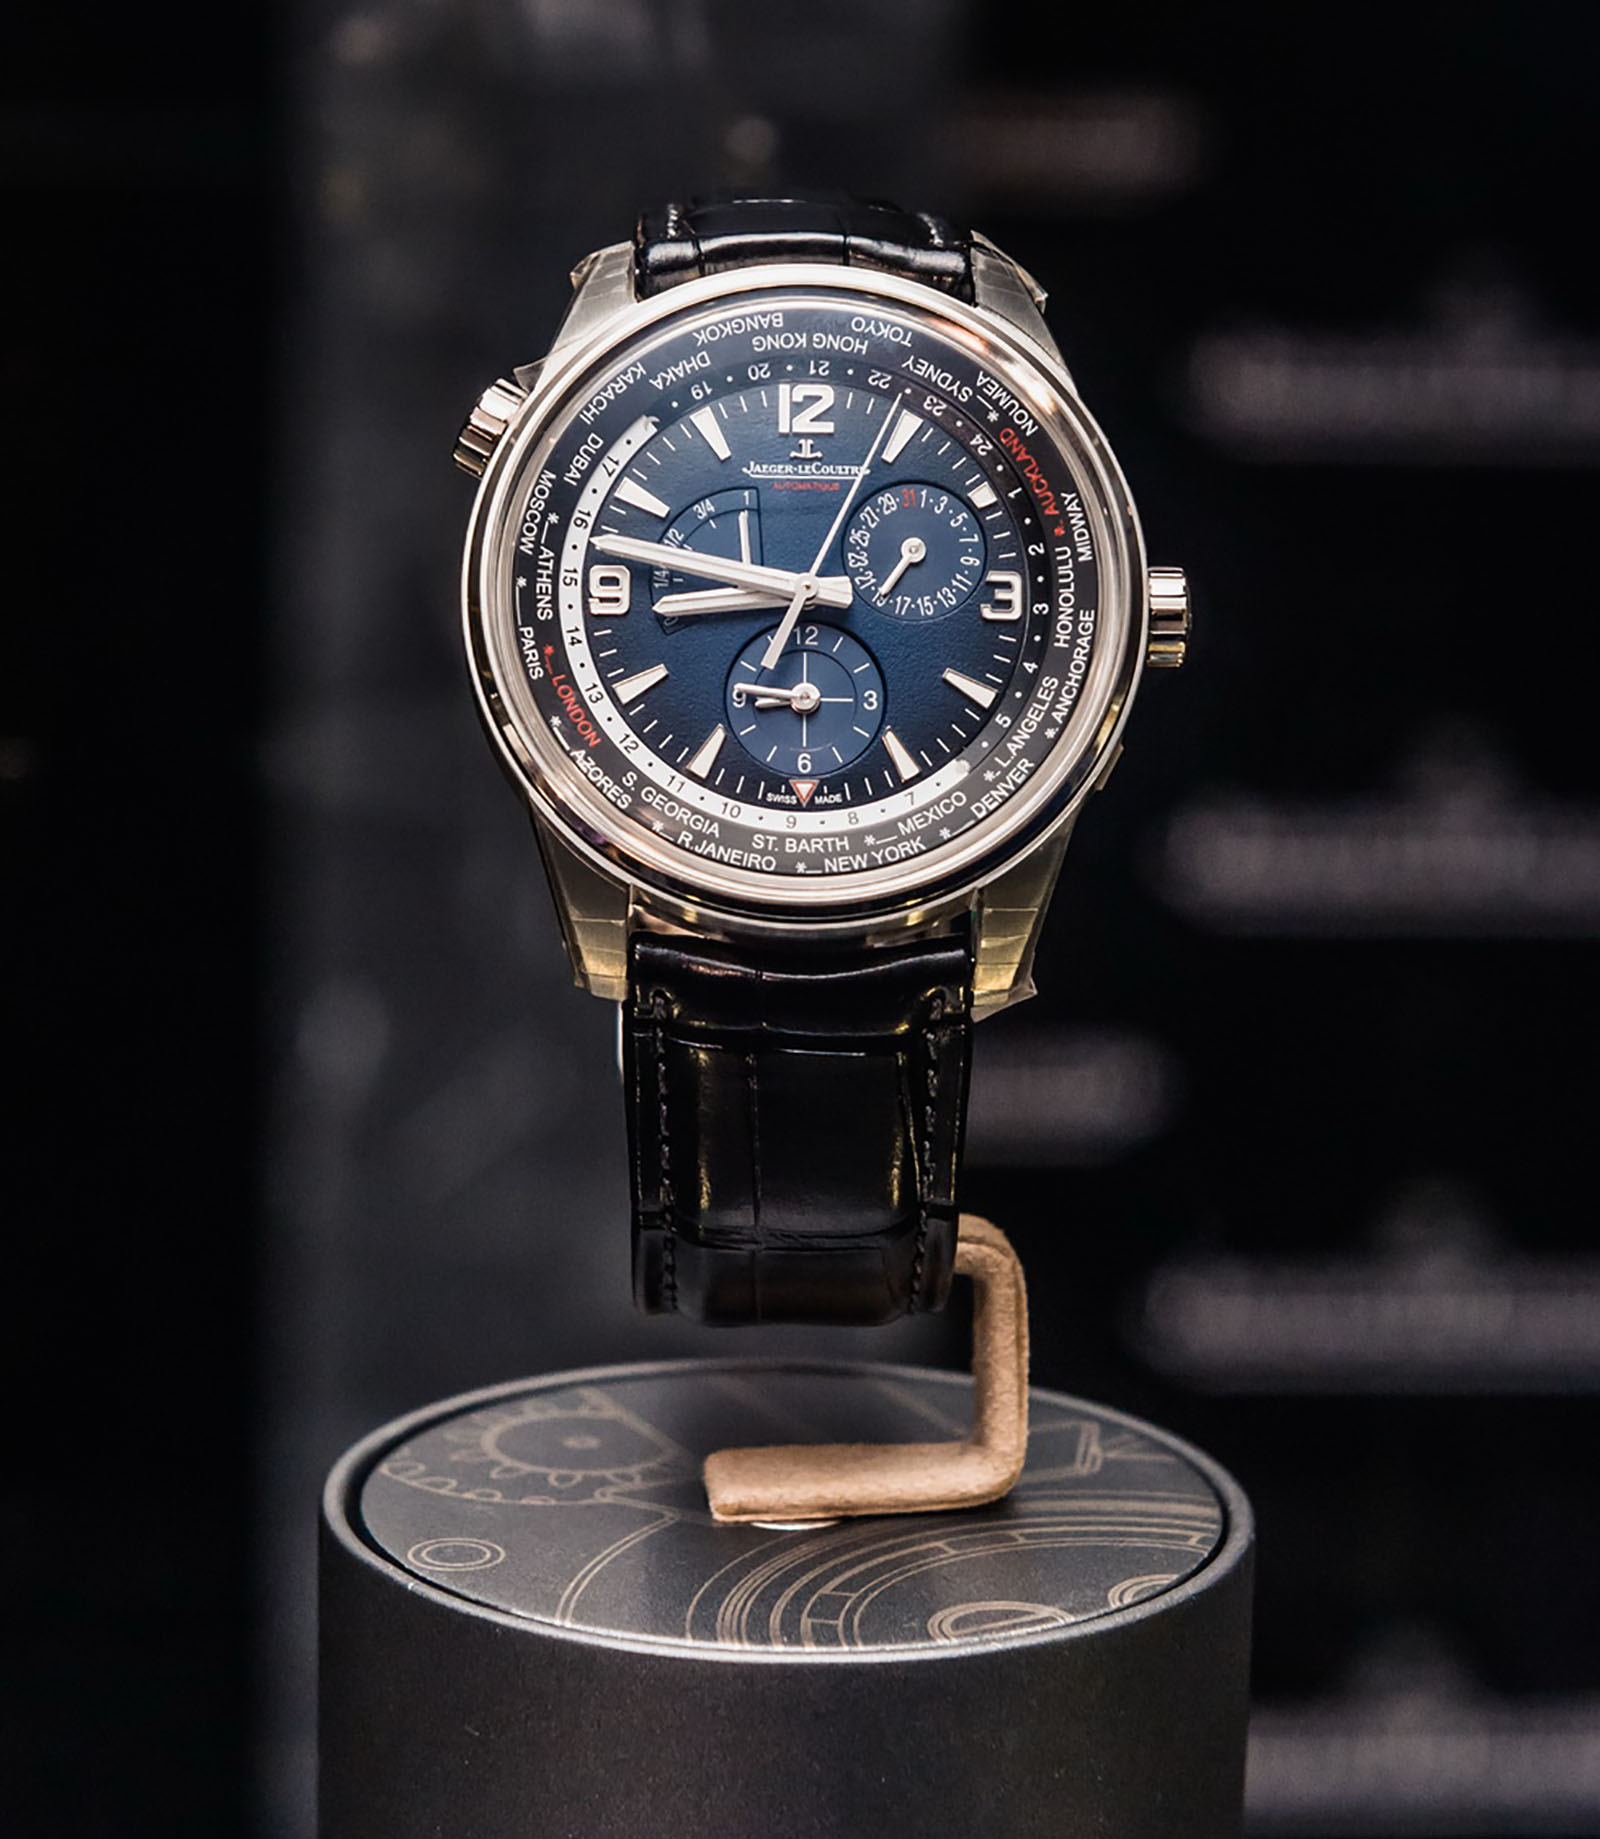 Jaeger-LeCoultre Polaris Geographic Worldtime